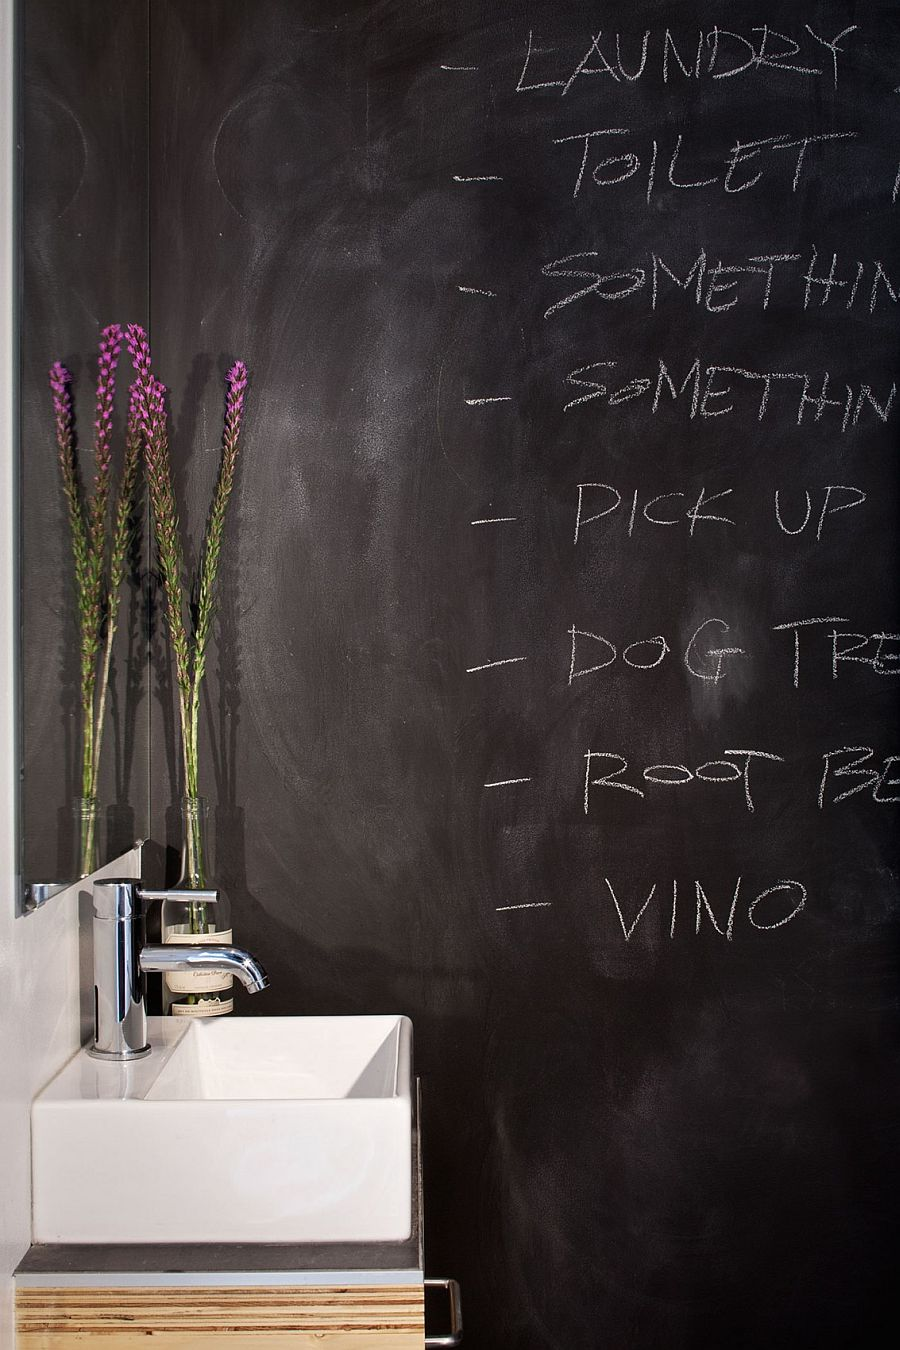 Chalkboard walls in the bathroom make for a fun and dynamic surface